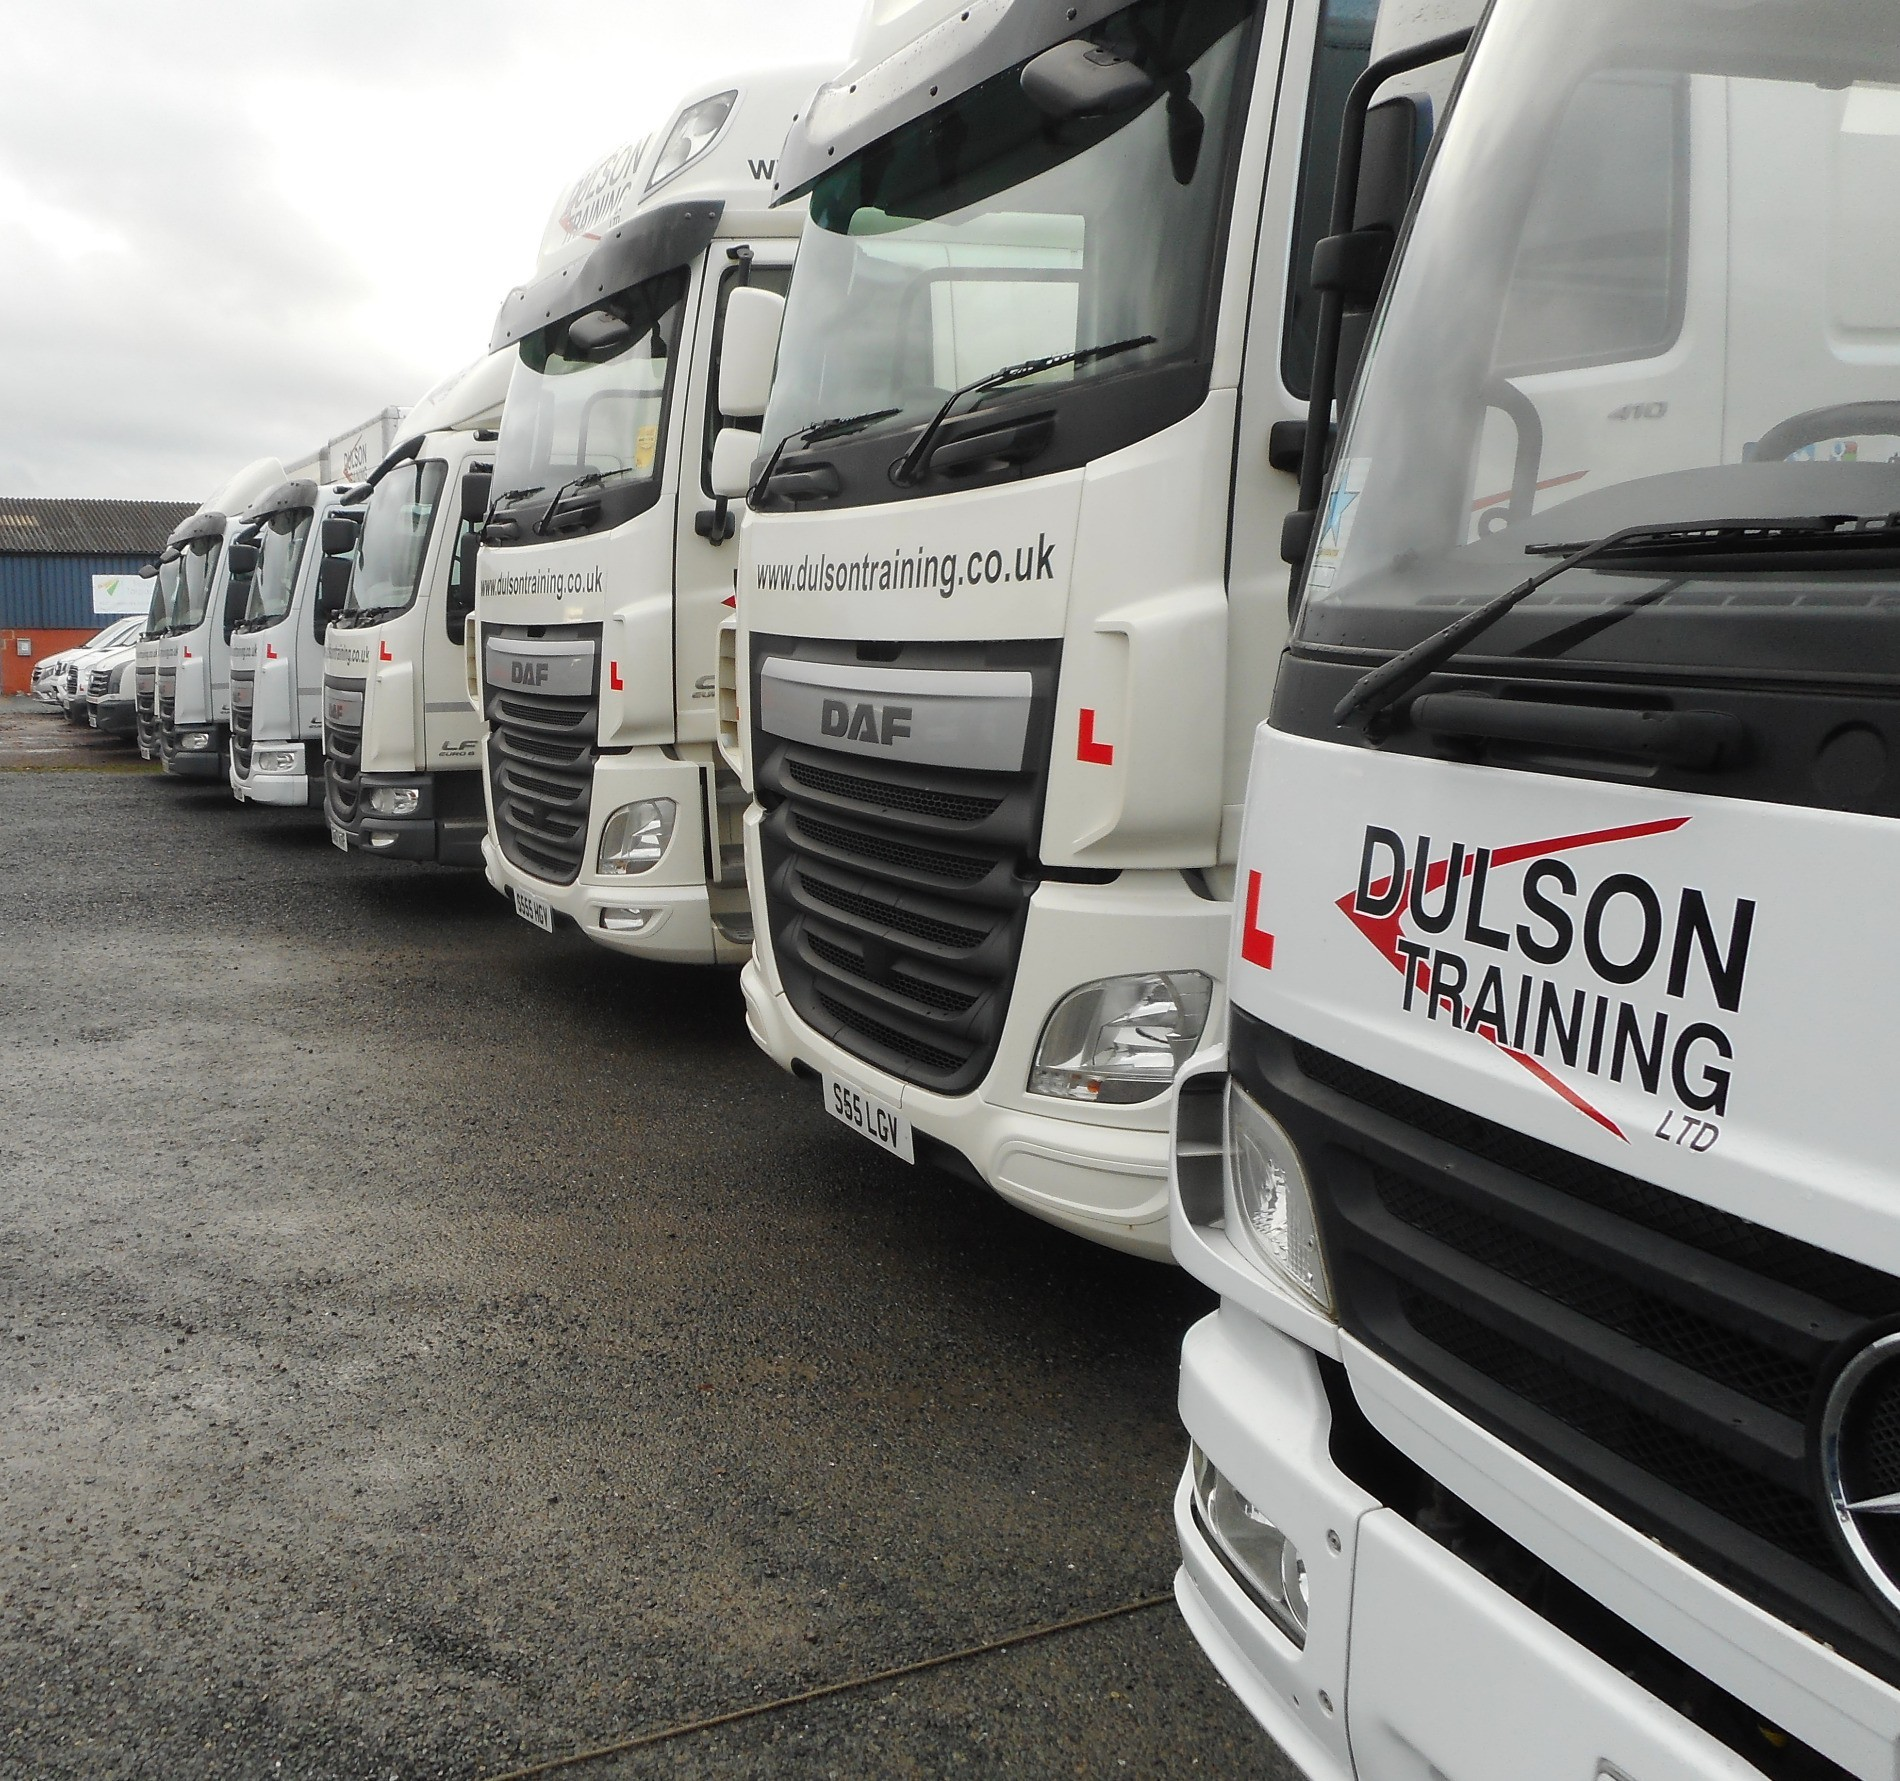 Very Busy times!! Dulson Training Ltd plugging away...